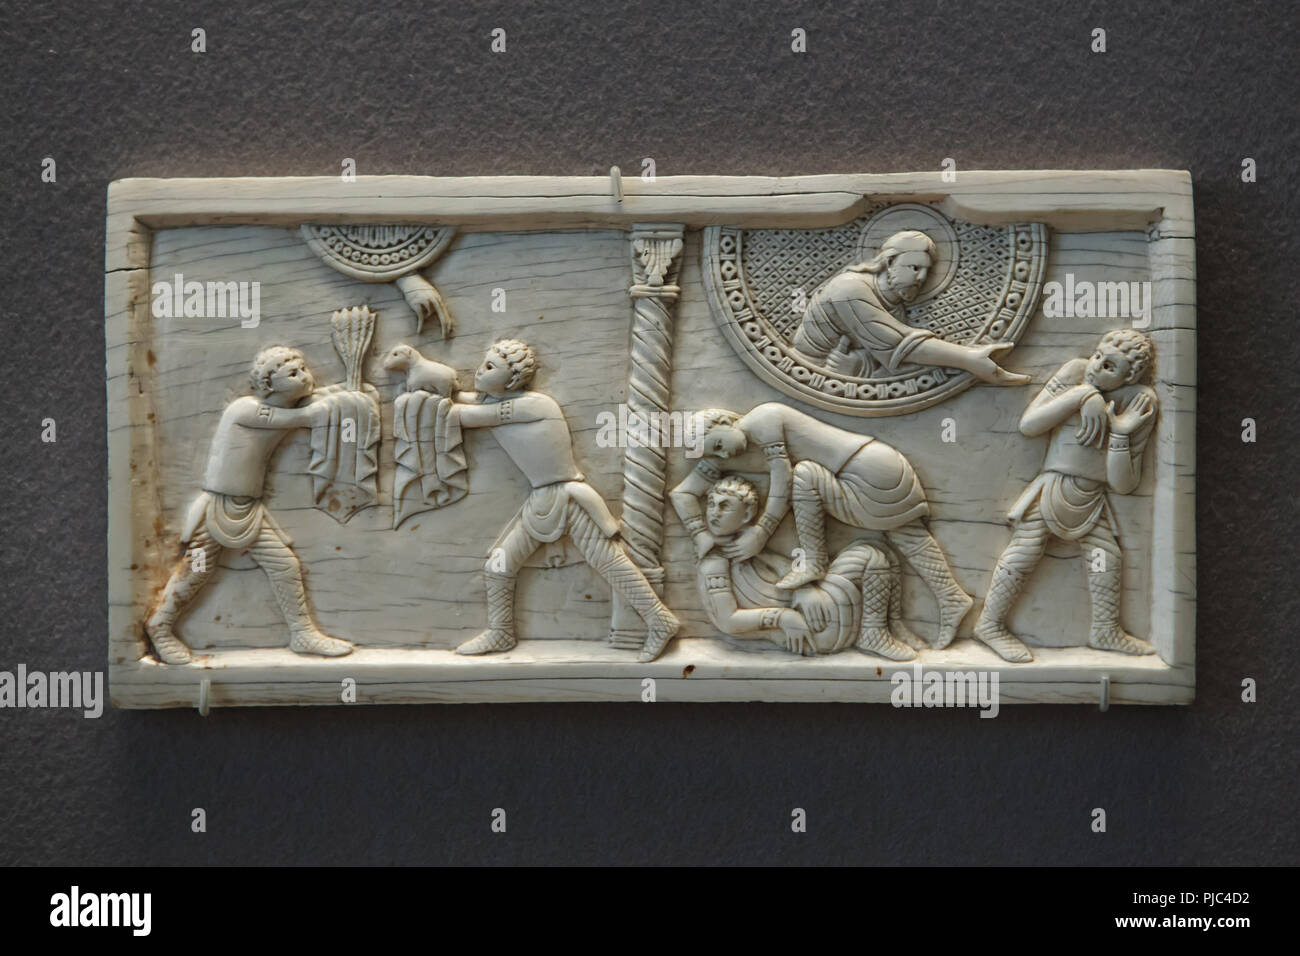 Story of Cain and Abel depicted in the ivory plaque from the Salerno Cathedral (ca. 1084) on display in the Louvre Museum in Paris, France. The Sacrifice of Cain and Abel (L) and Cain slaying Abel (R) are depicted in the plaque. - Stock Image